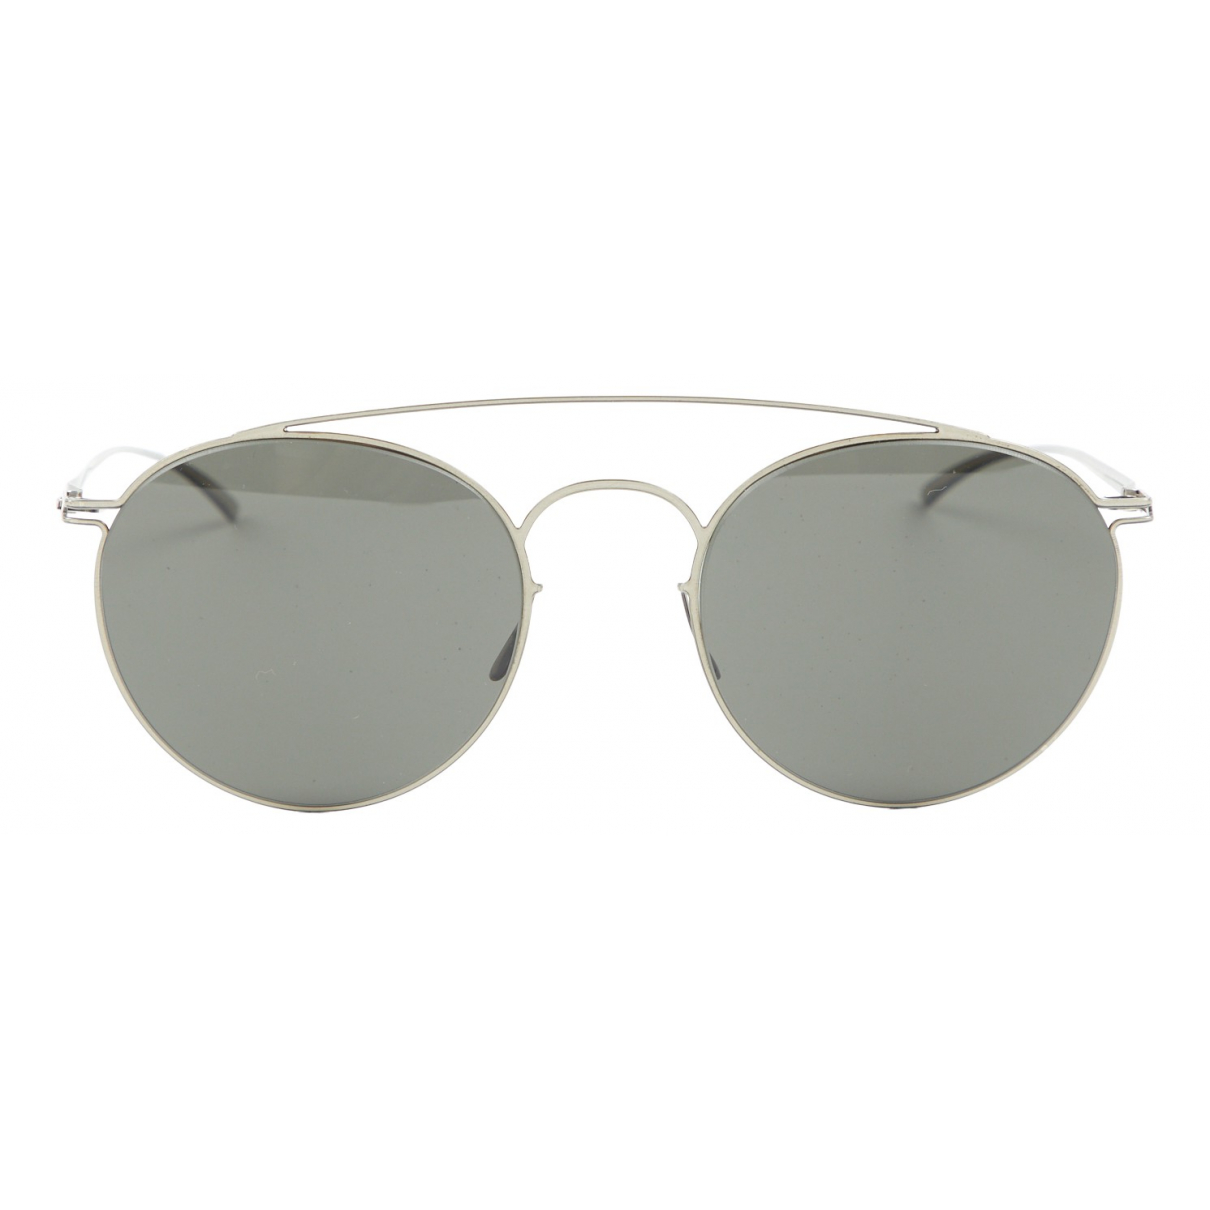 Maison Martin Margiela N Silver Metal Sunglasses for Women N